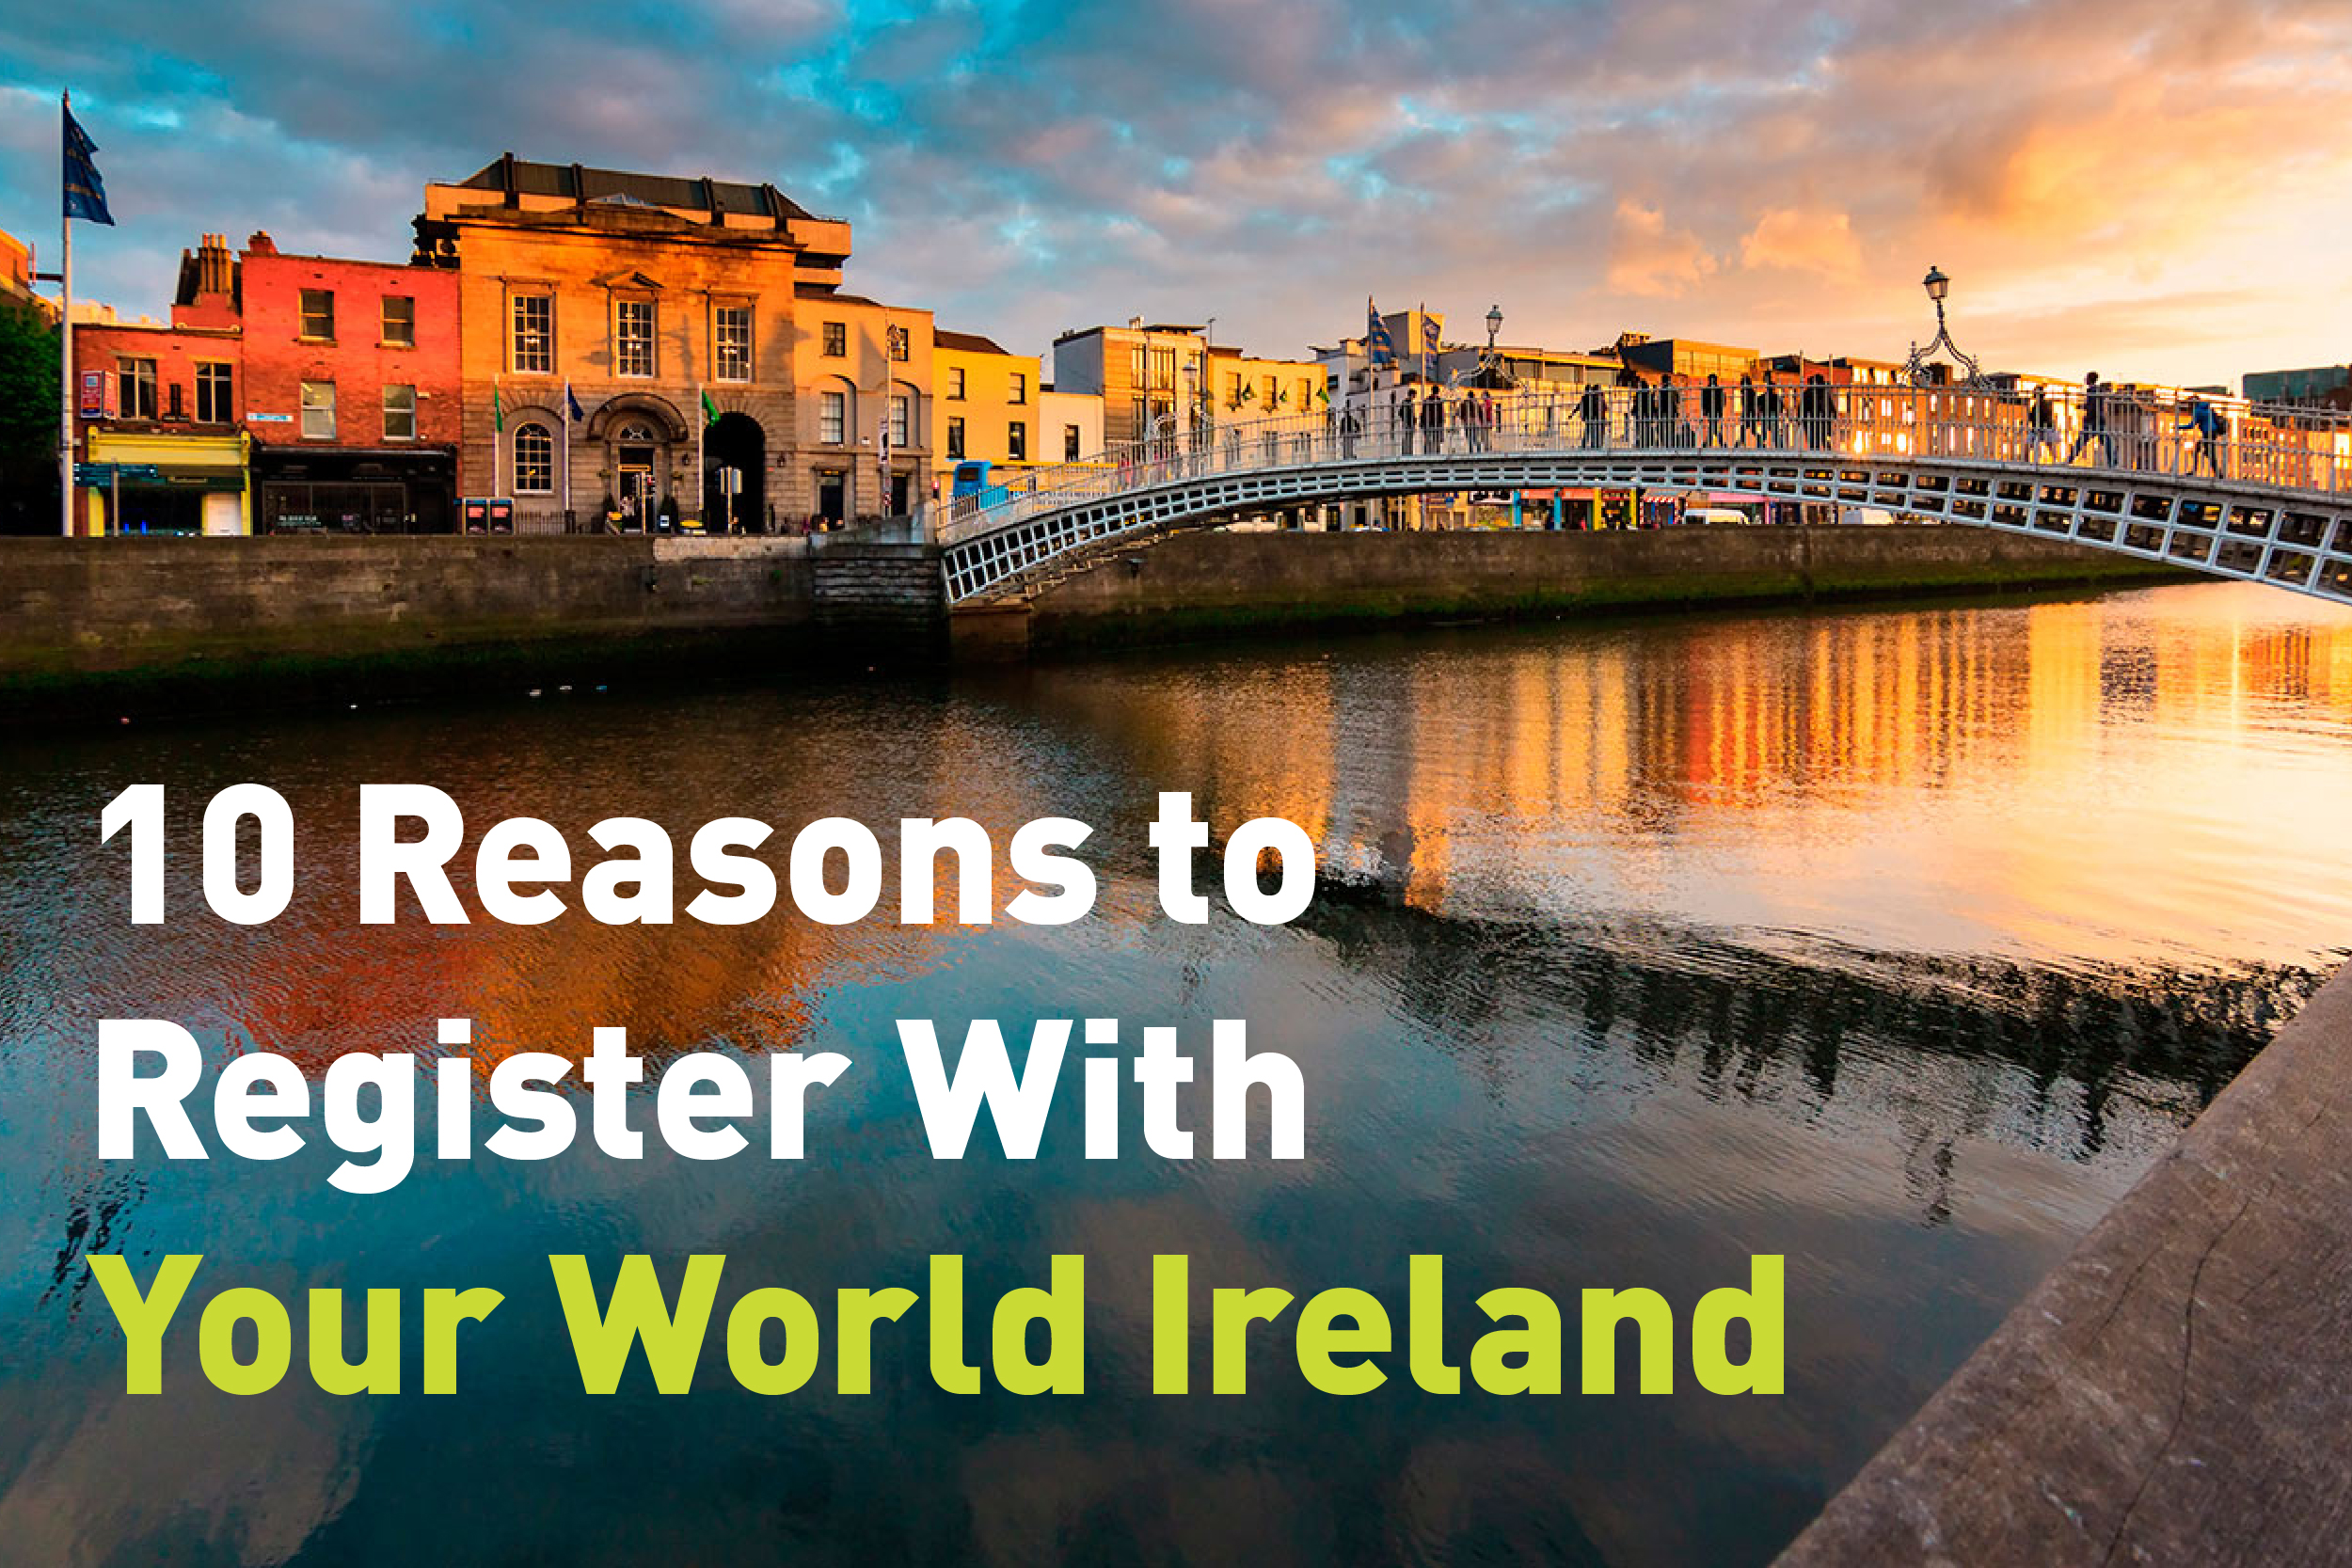 10 reasons to register with Your World Ireland